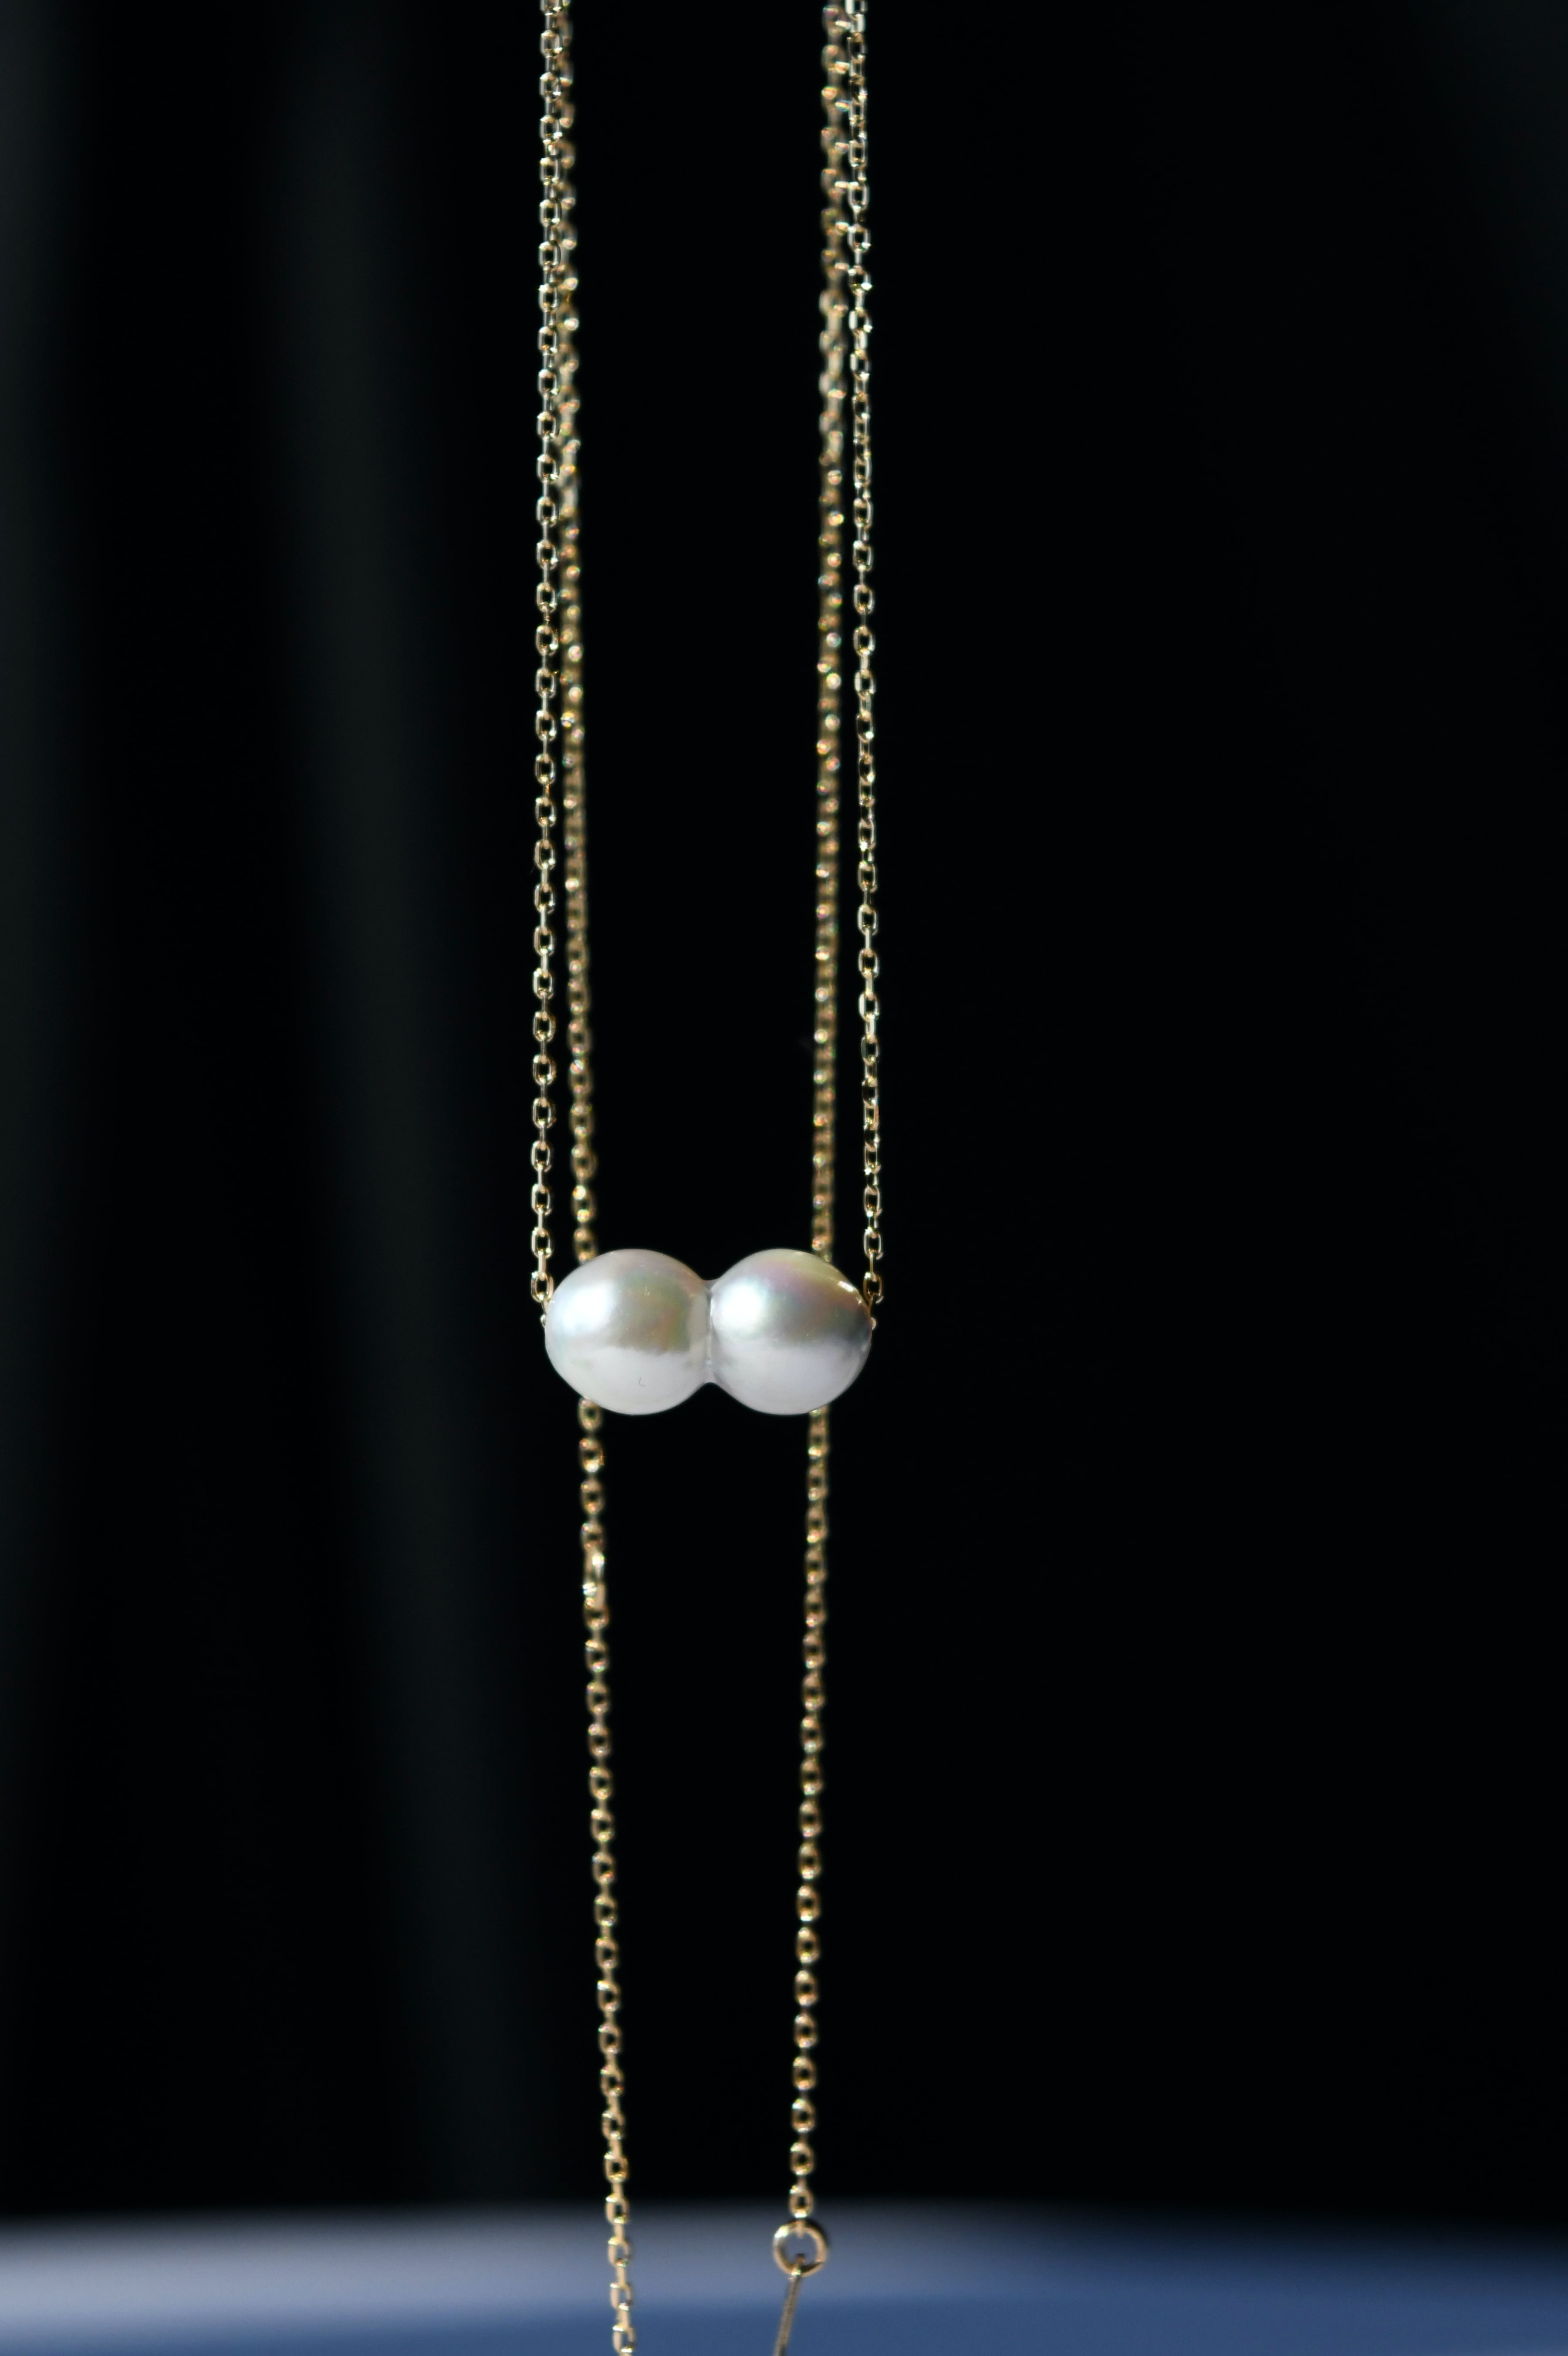 K18YG Akoya Twins Pearl Necklace 18金アコヤ双子真珠ネックレス(ホワイト)